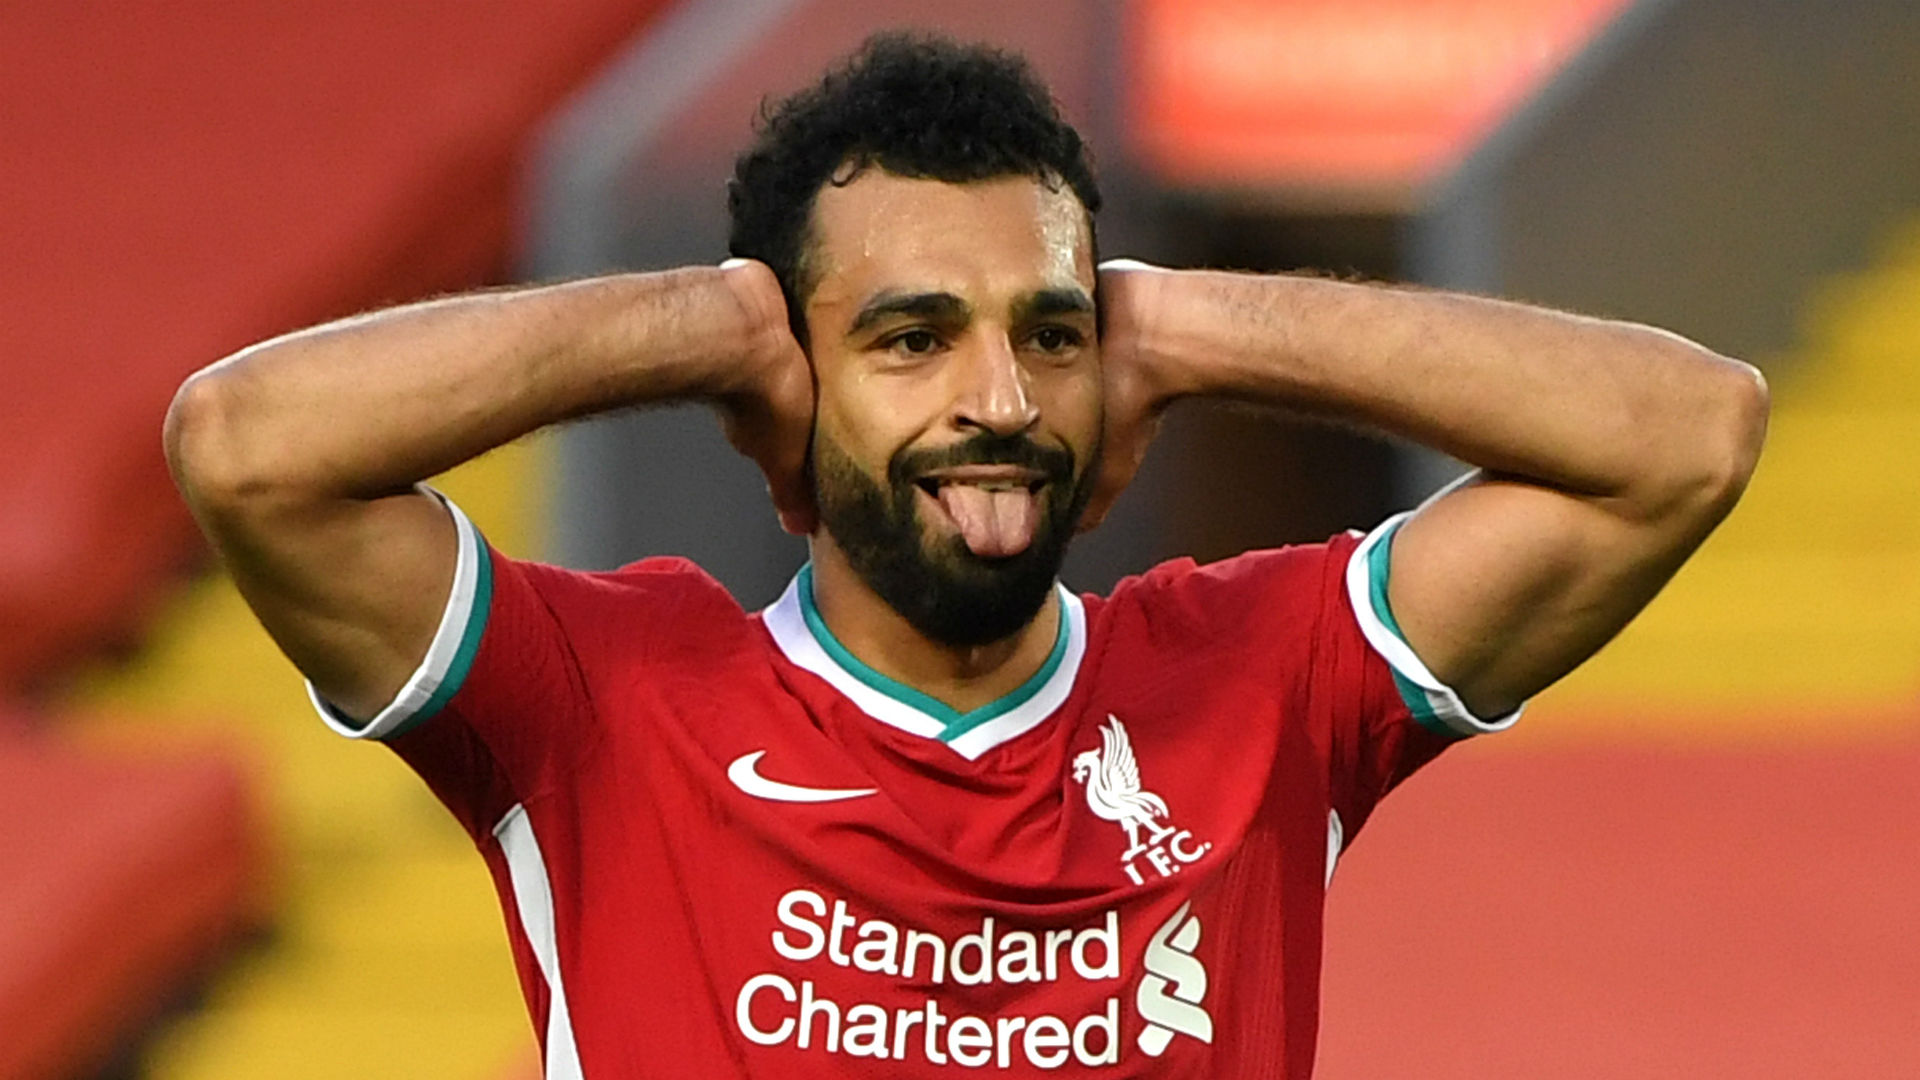 Football is back - and so is Salah! Liverpool make good on Klopp's promise to attack Premier League title 1